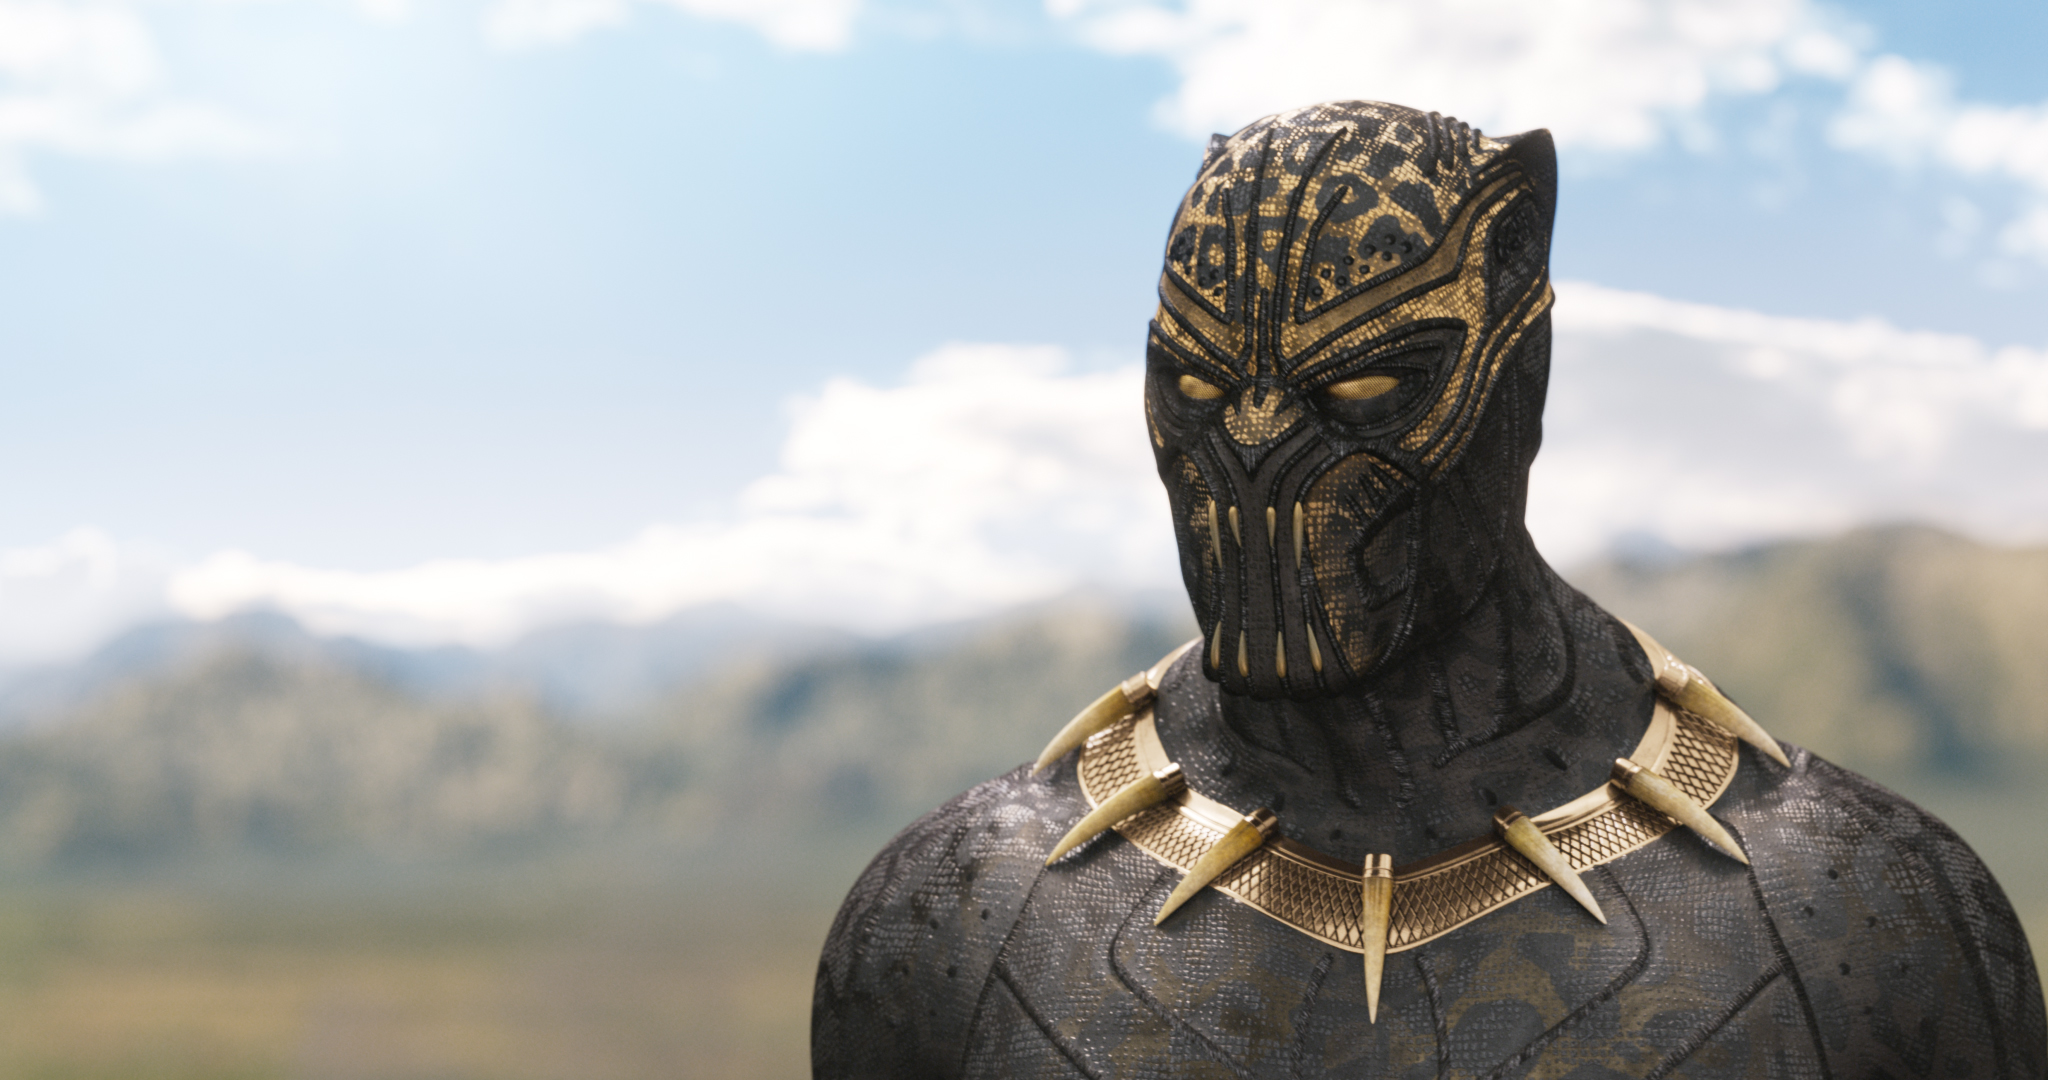 Erik Killmonger (Michael B. Jordan) in the other Black Panther suit.